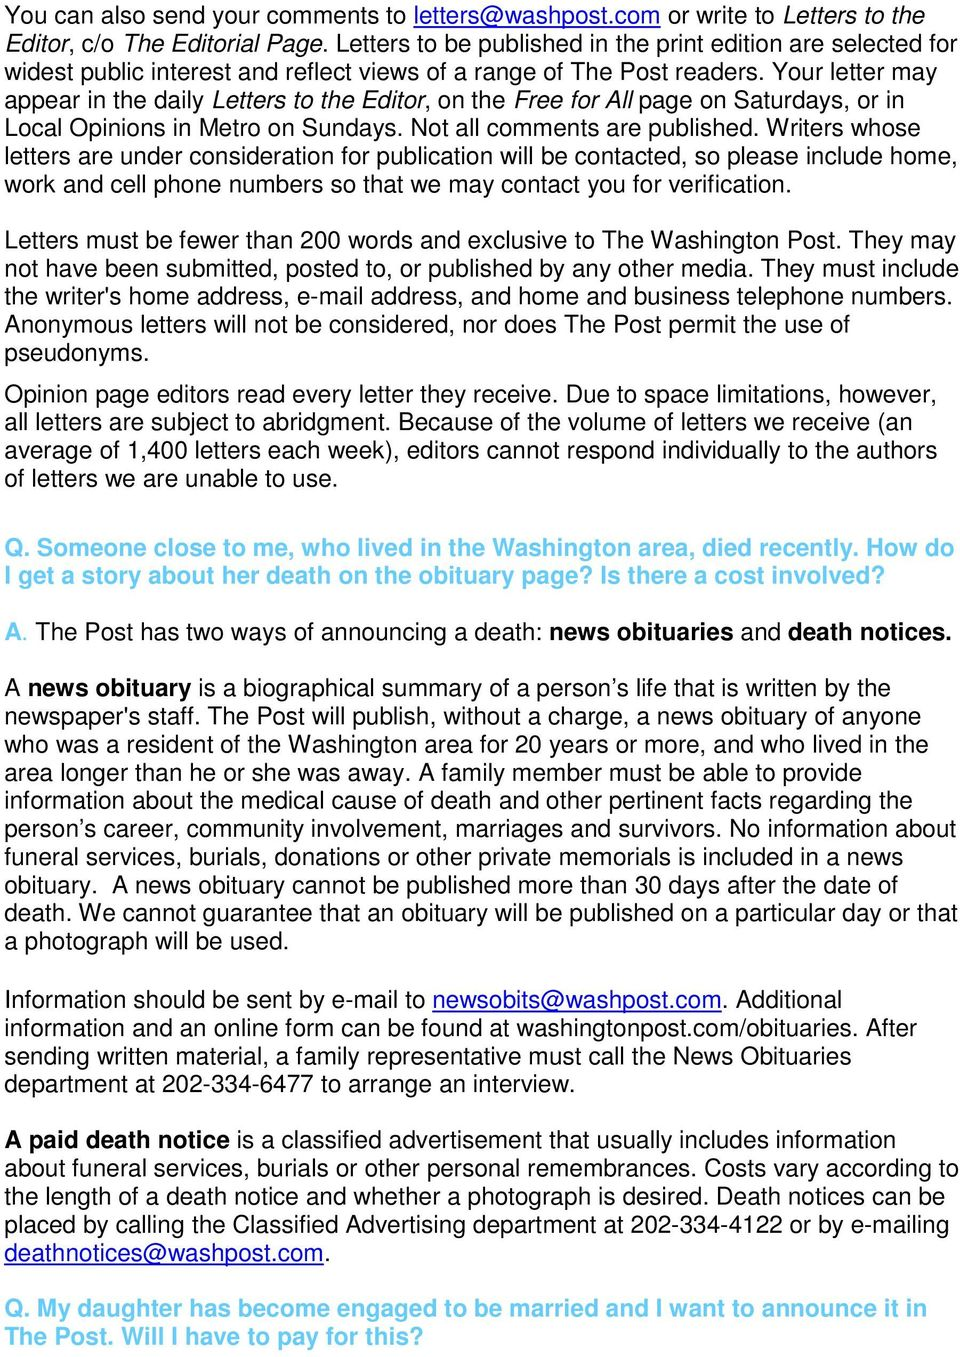 your letter may appear in the daily letters to the editor on the free for